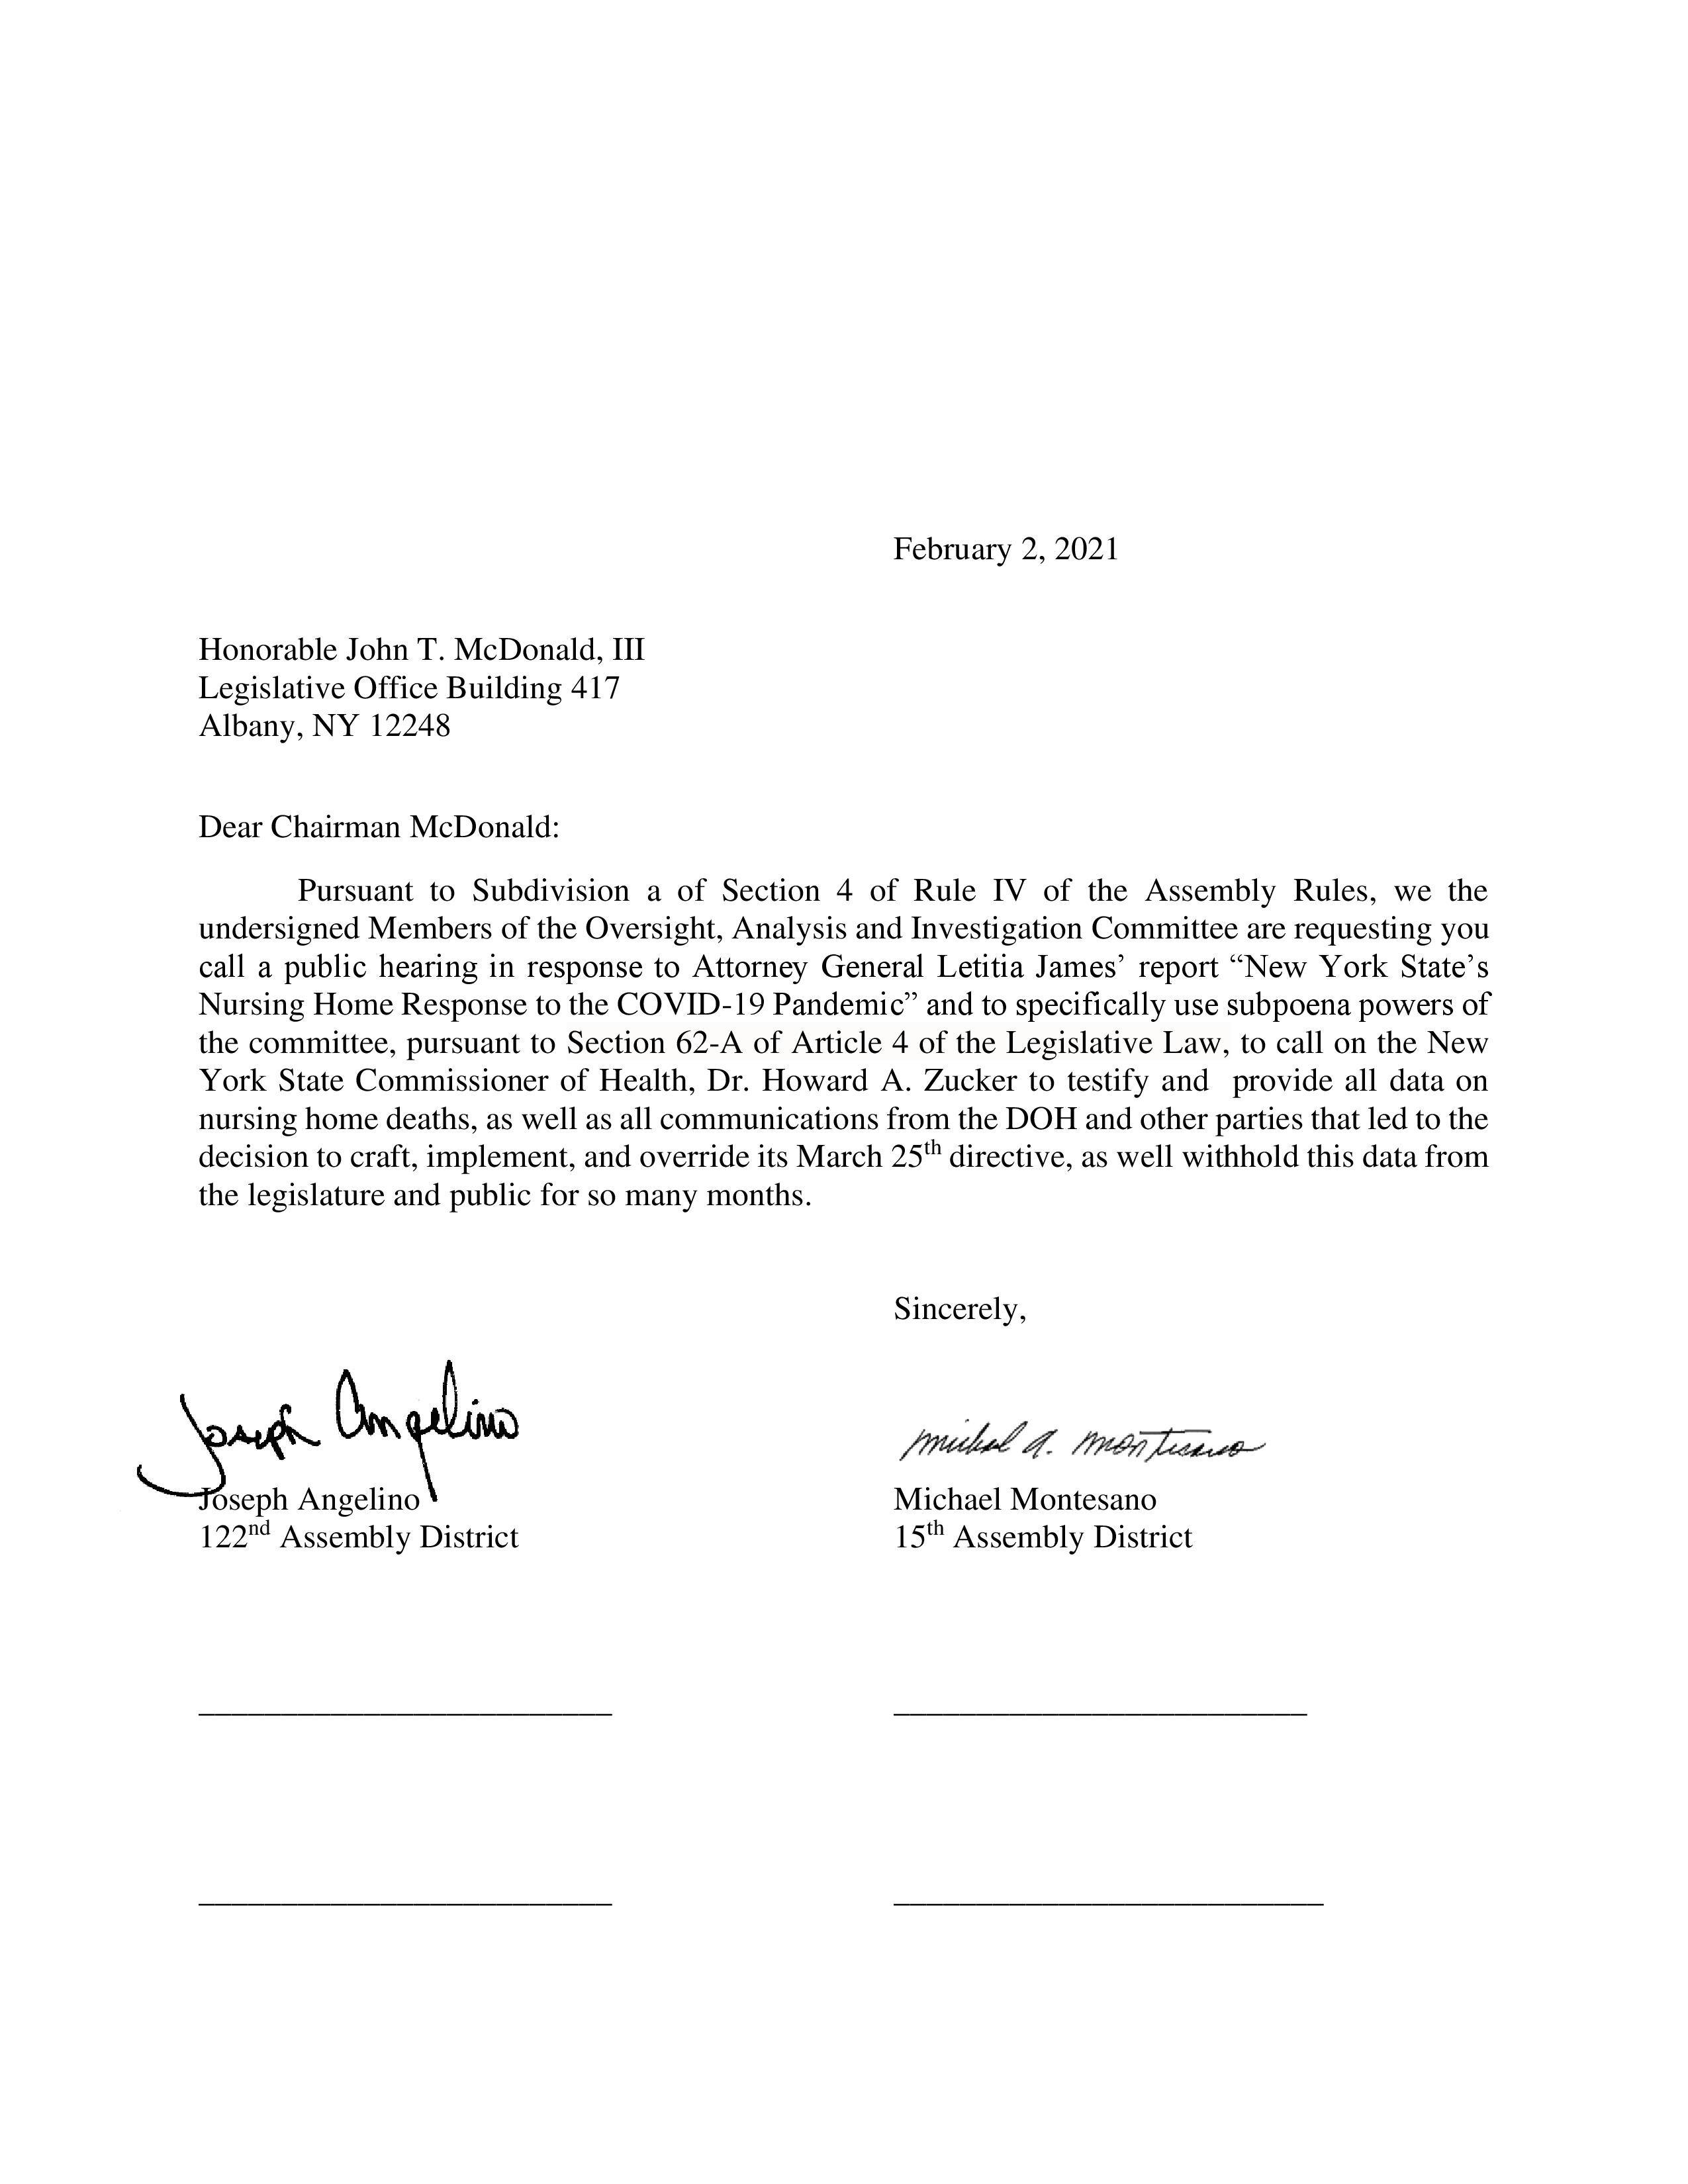 Oversight__Analysis_and_Investigation_Committee_Chairman_Letter_2.1.21-page-2.jpg